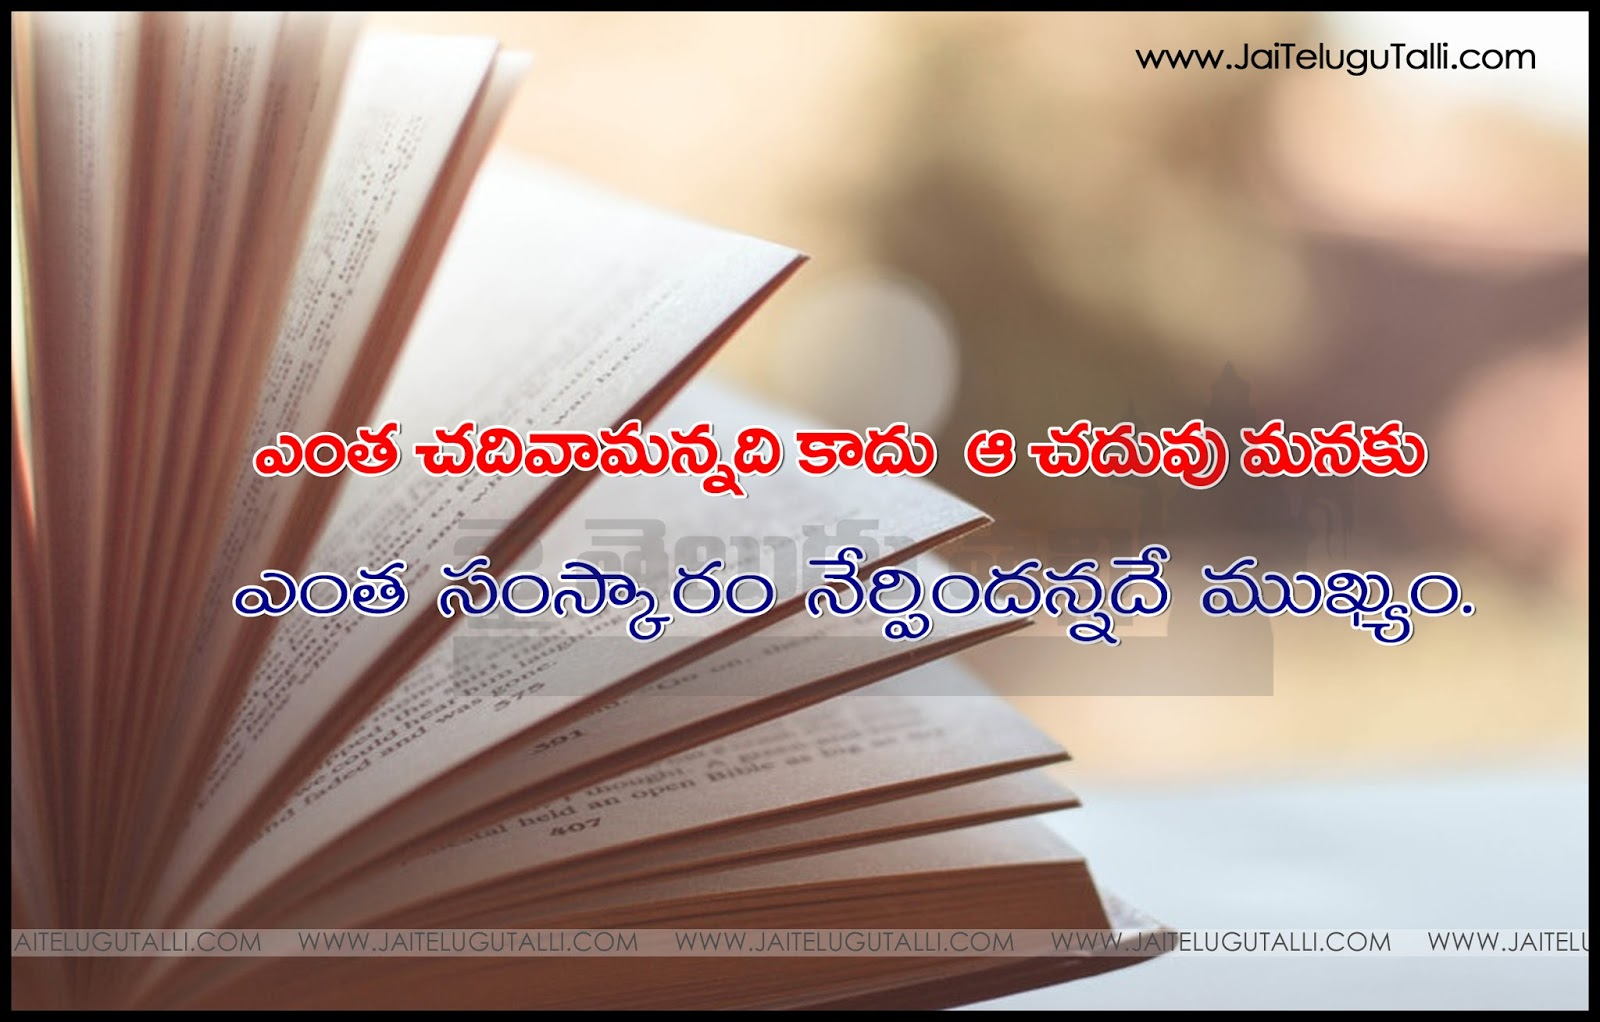 best sayings and educational quotes in telugu with images